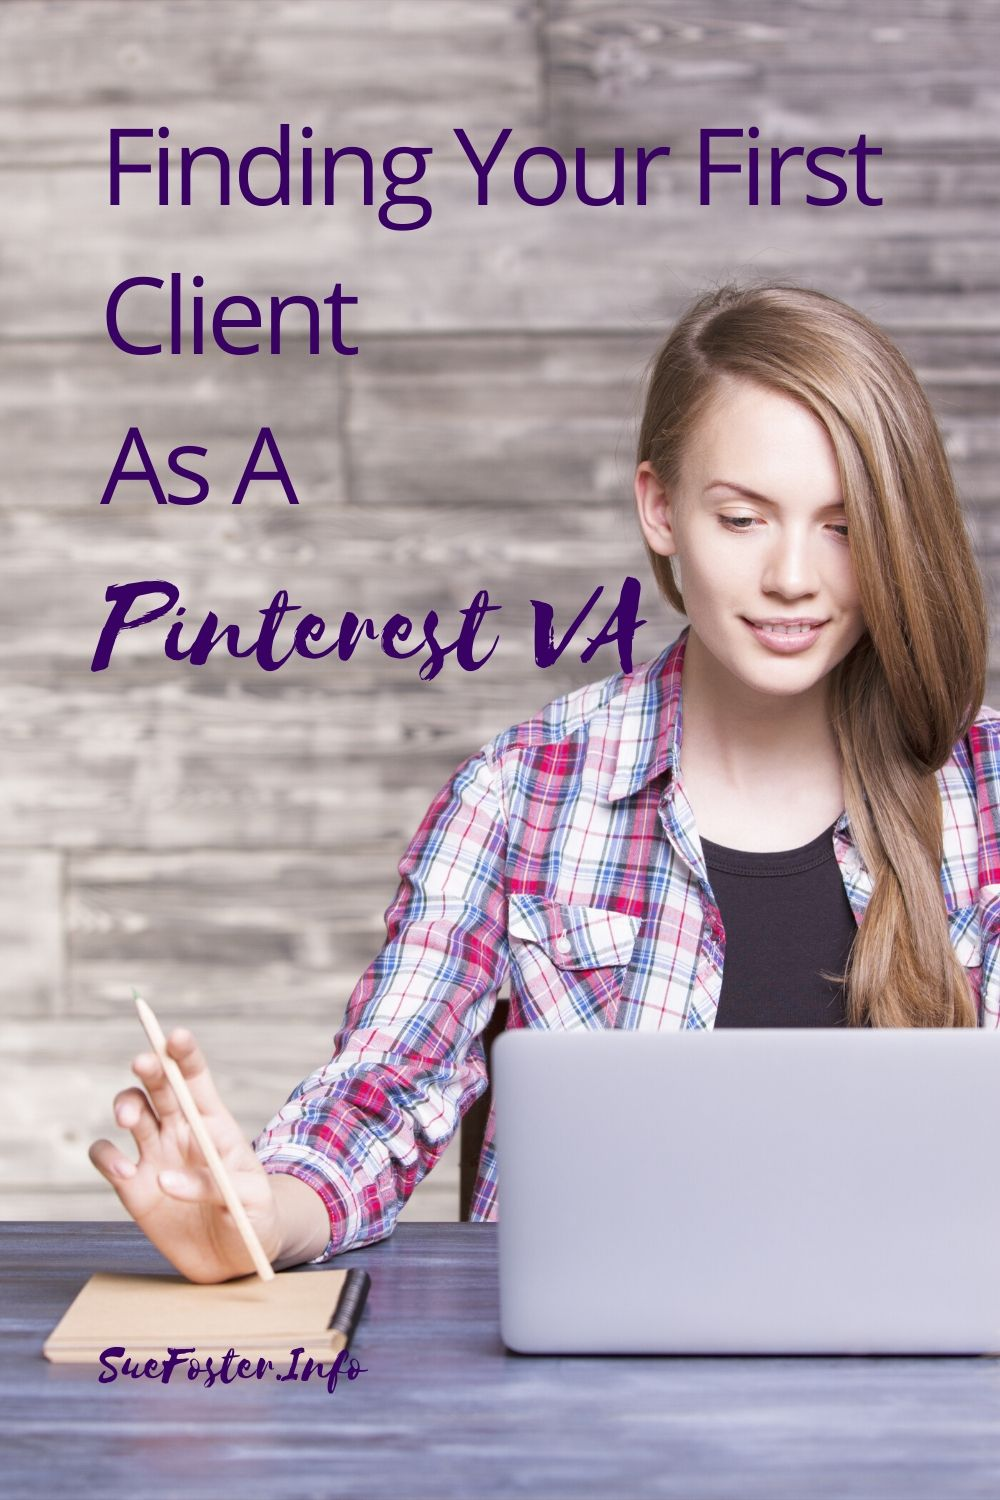 Finding your first client as a Pinterest VA